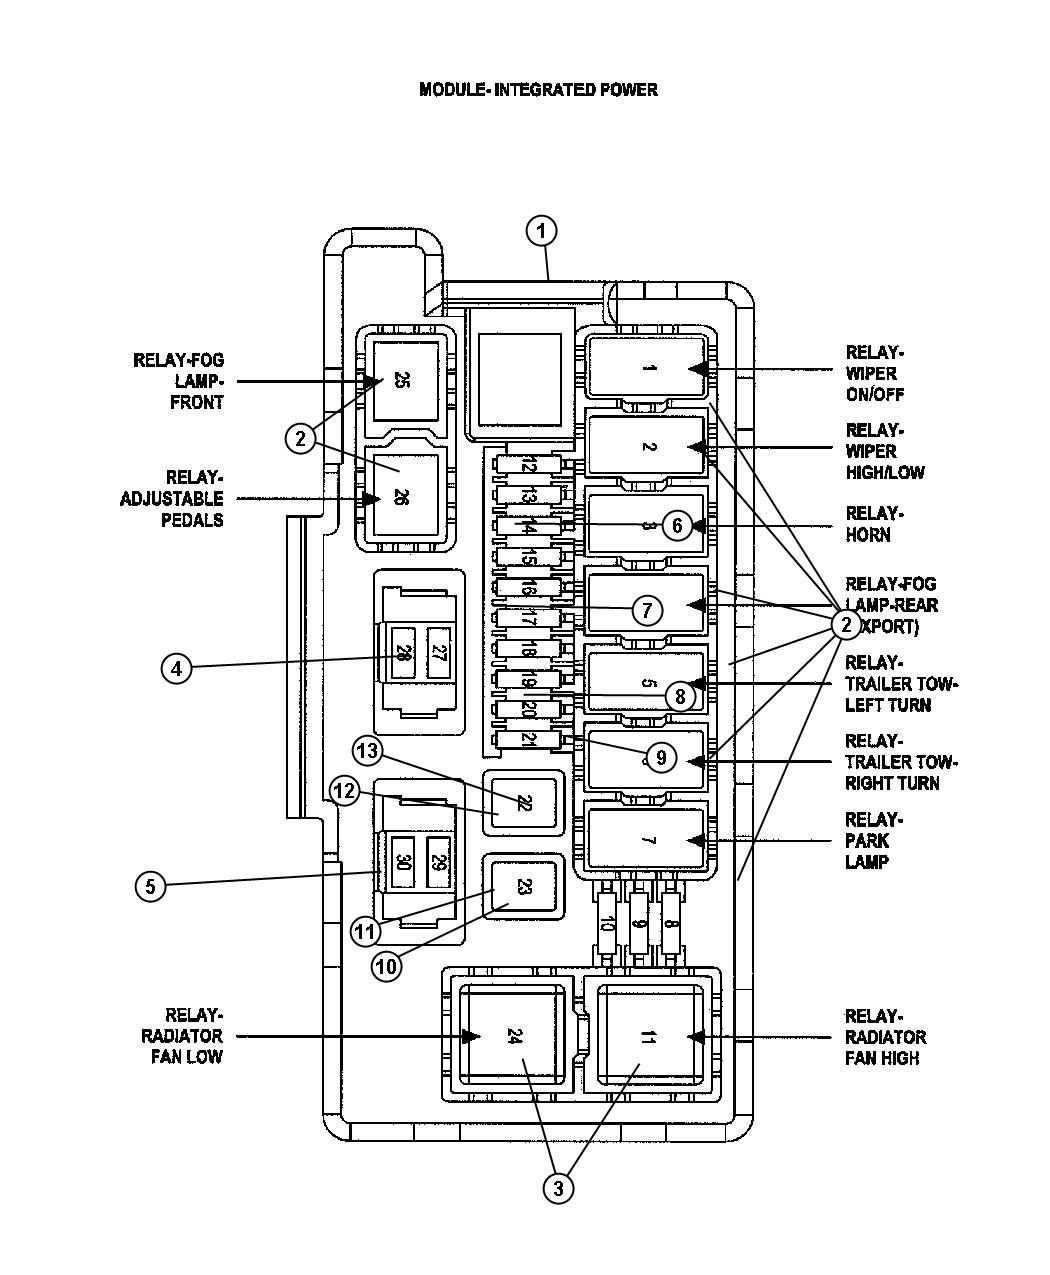 Fuse Box Diagram For 2008 Jeep Commander : 40 Wiring